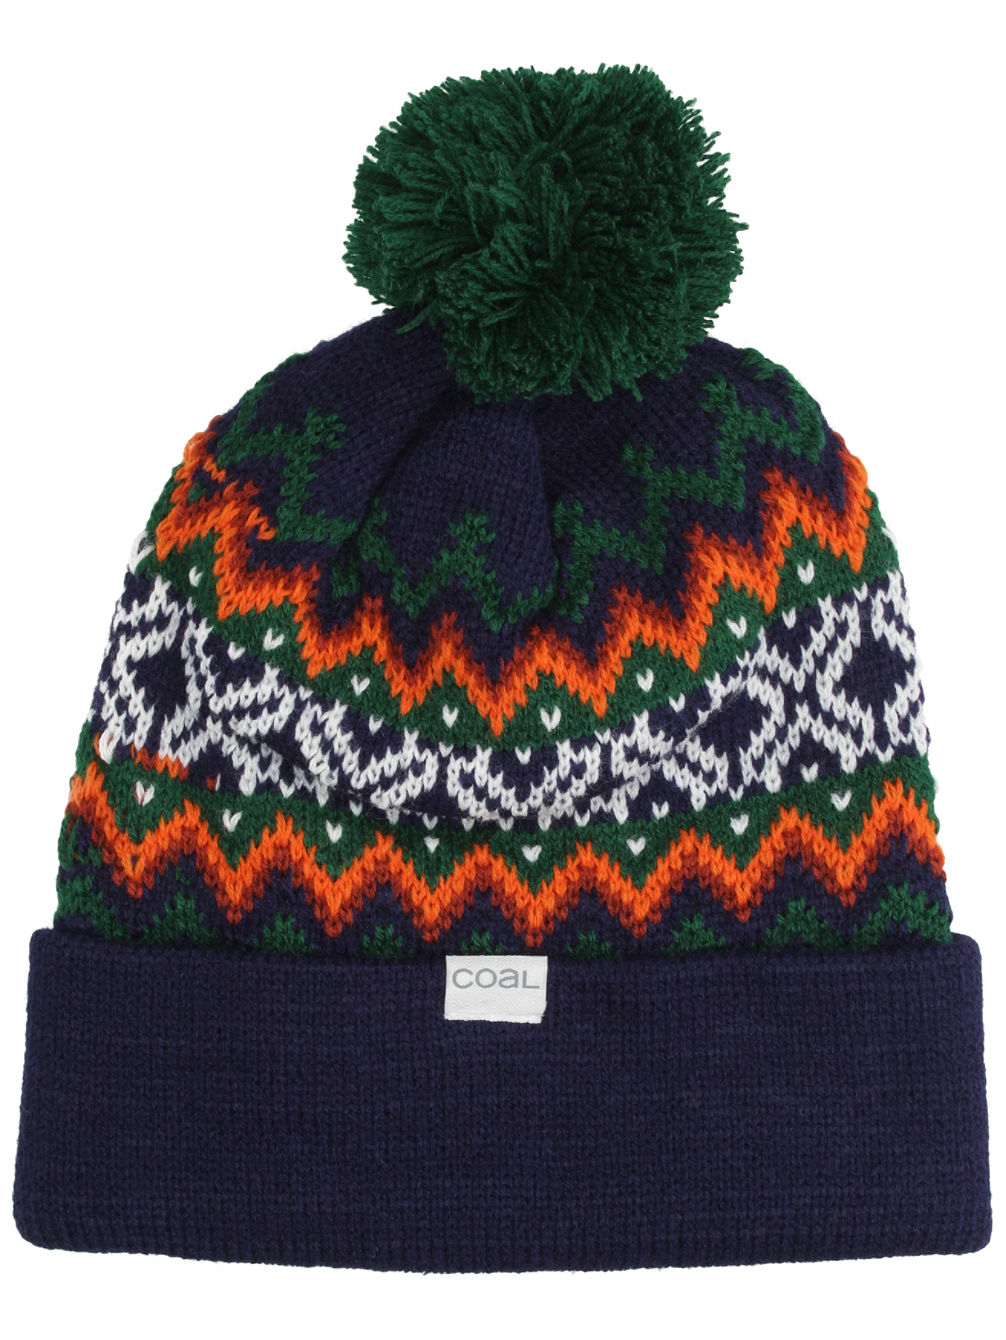 The Winters Beanie